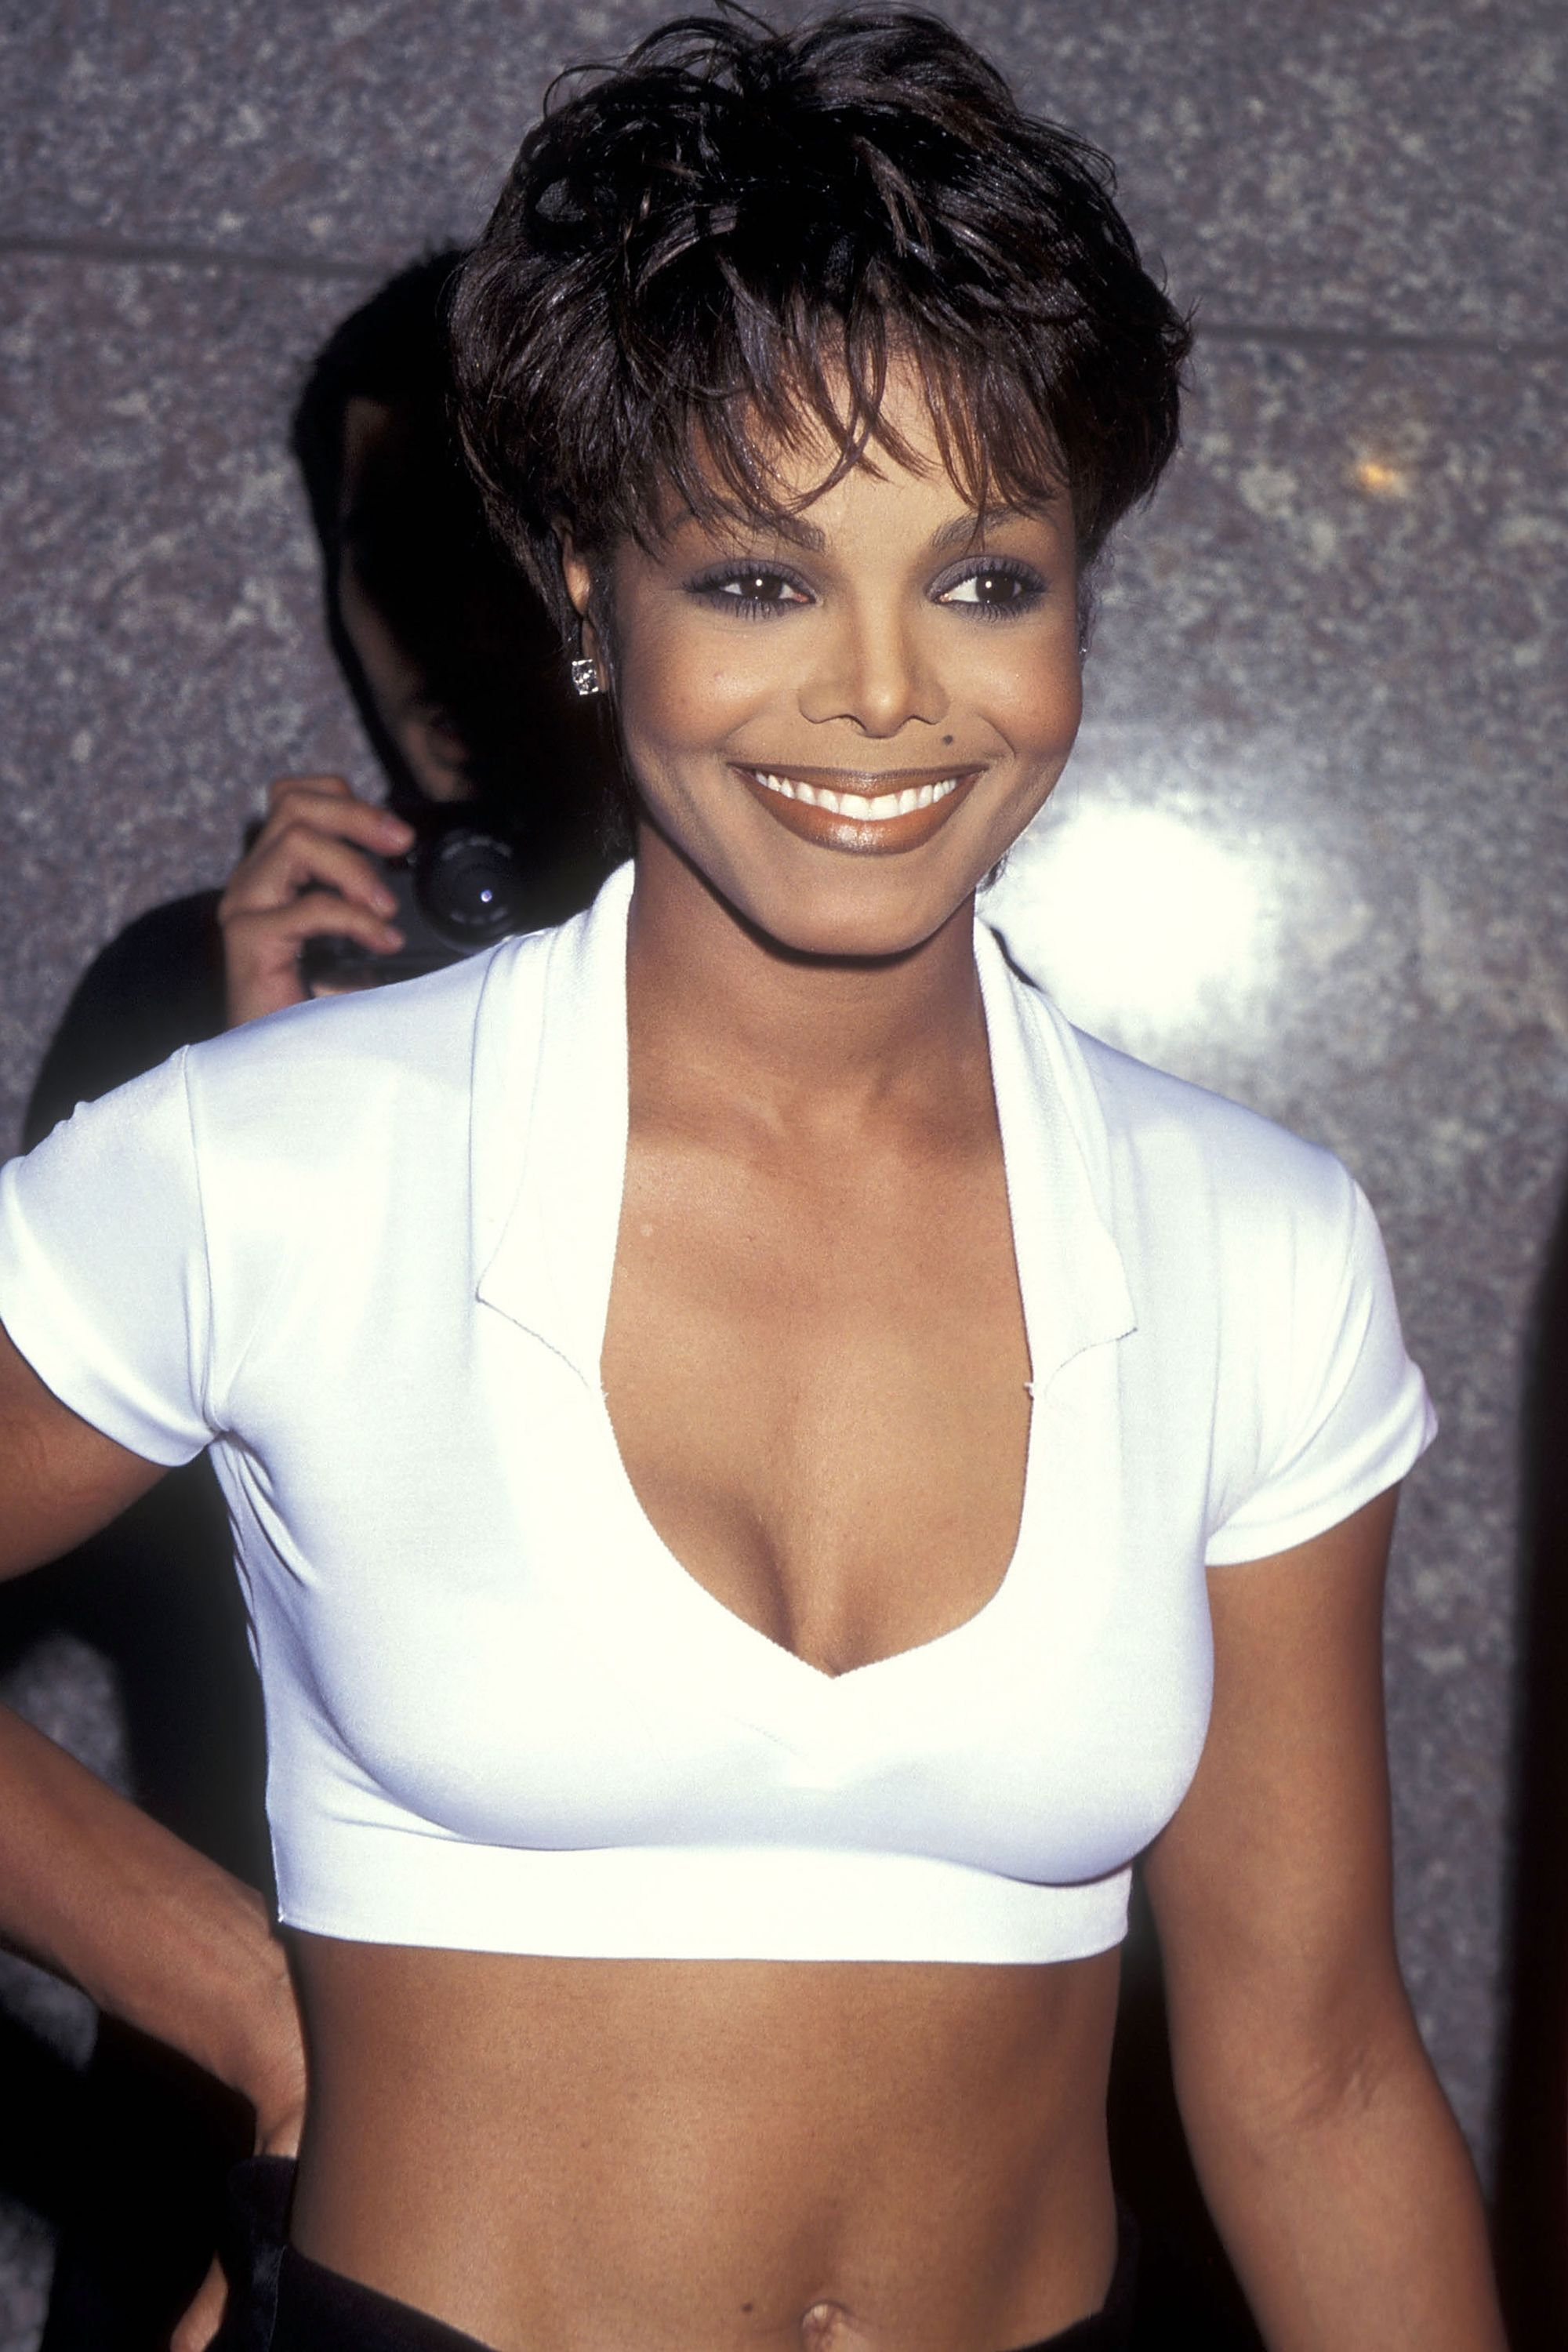 Janet Jackson In Photos: A Look Back...